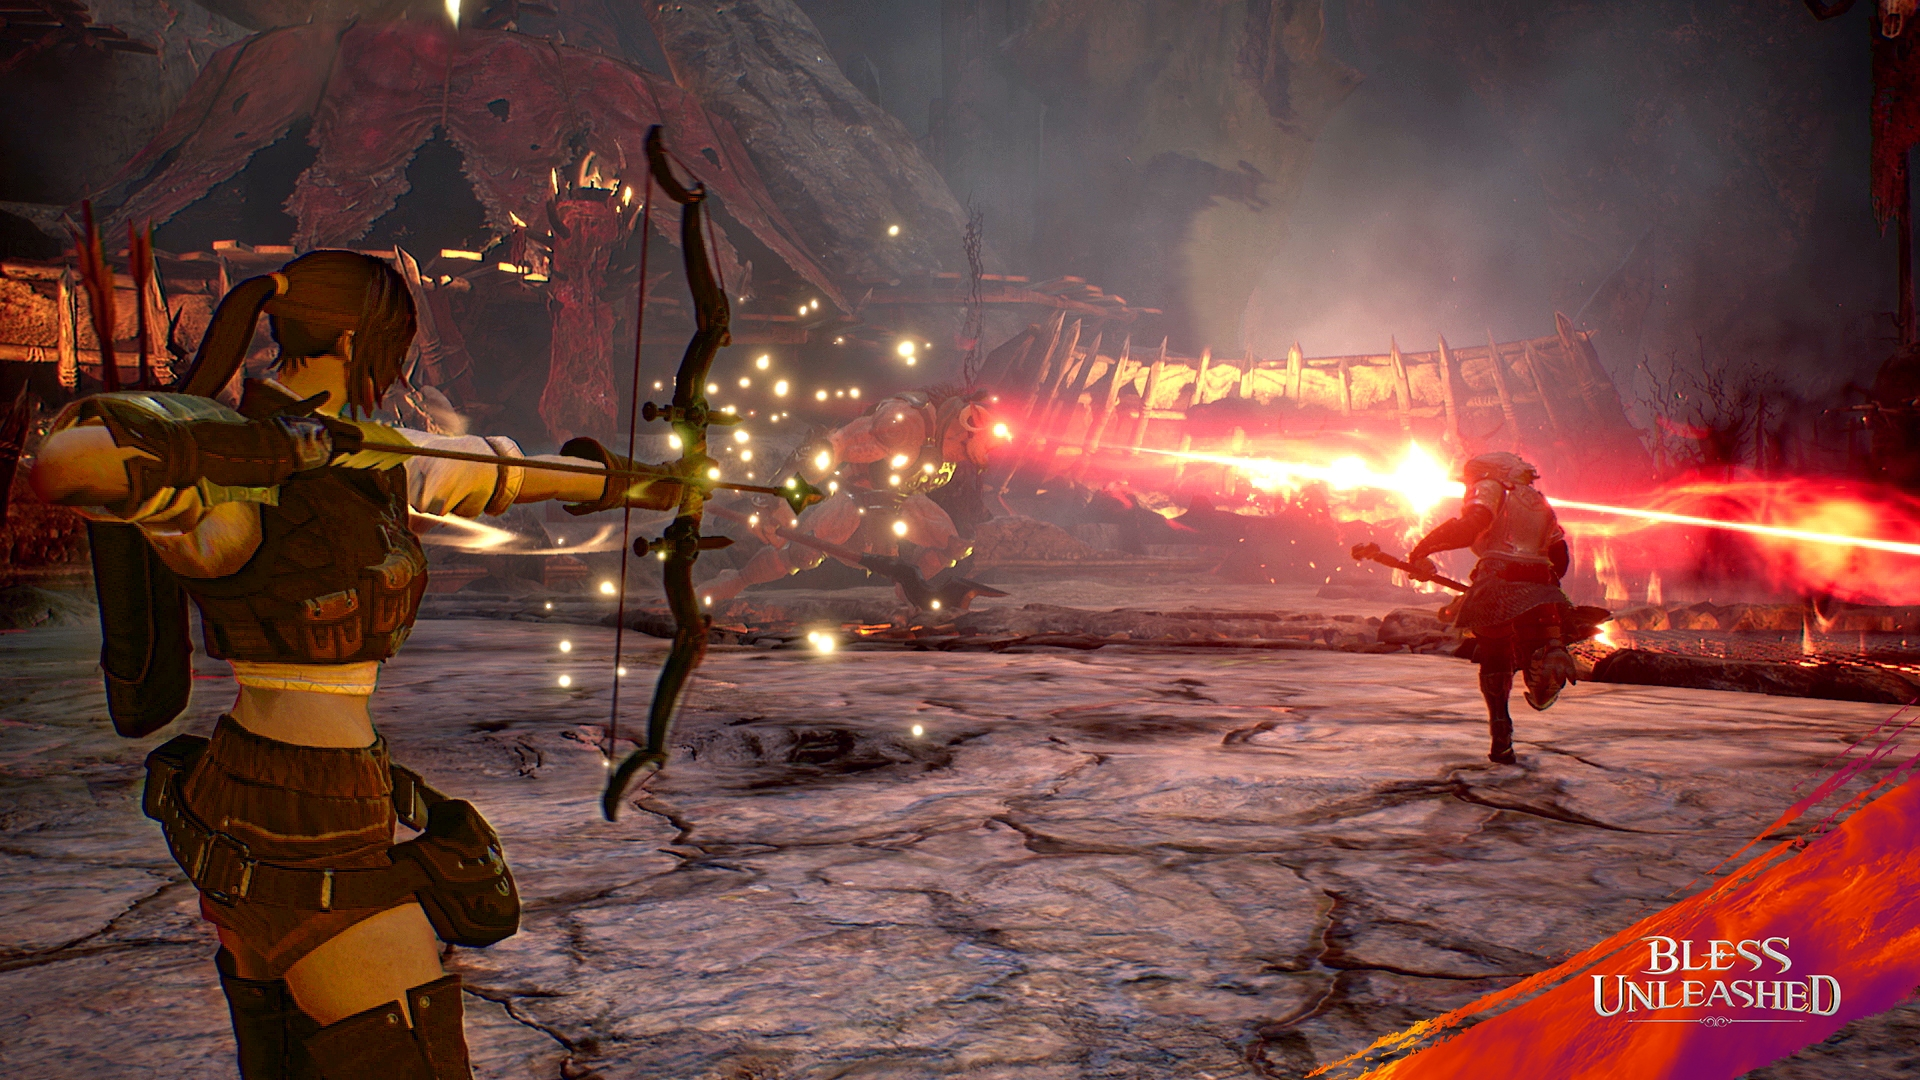 Bandai Namco announces Bless Unleashed, its first console MMO - Polygon